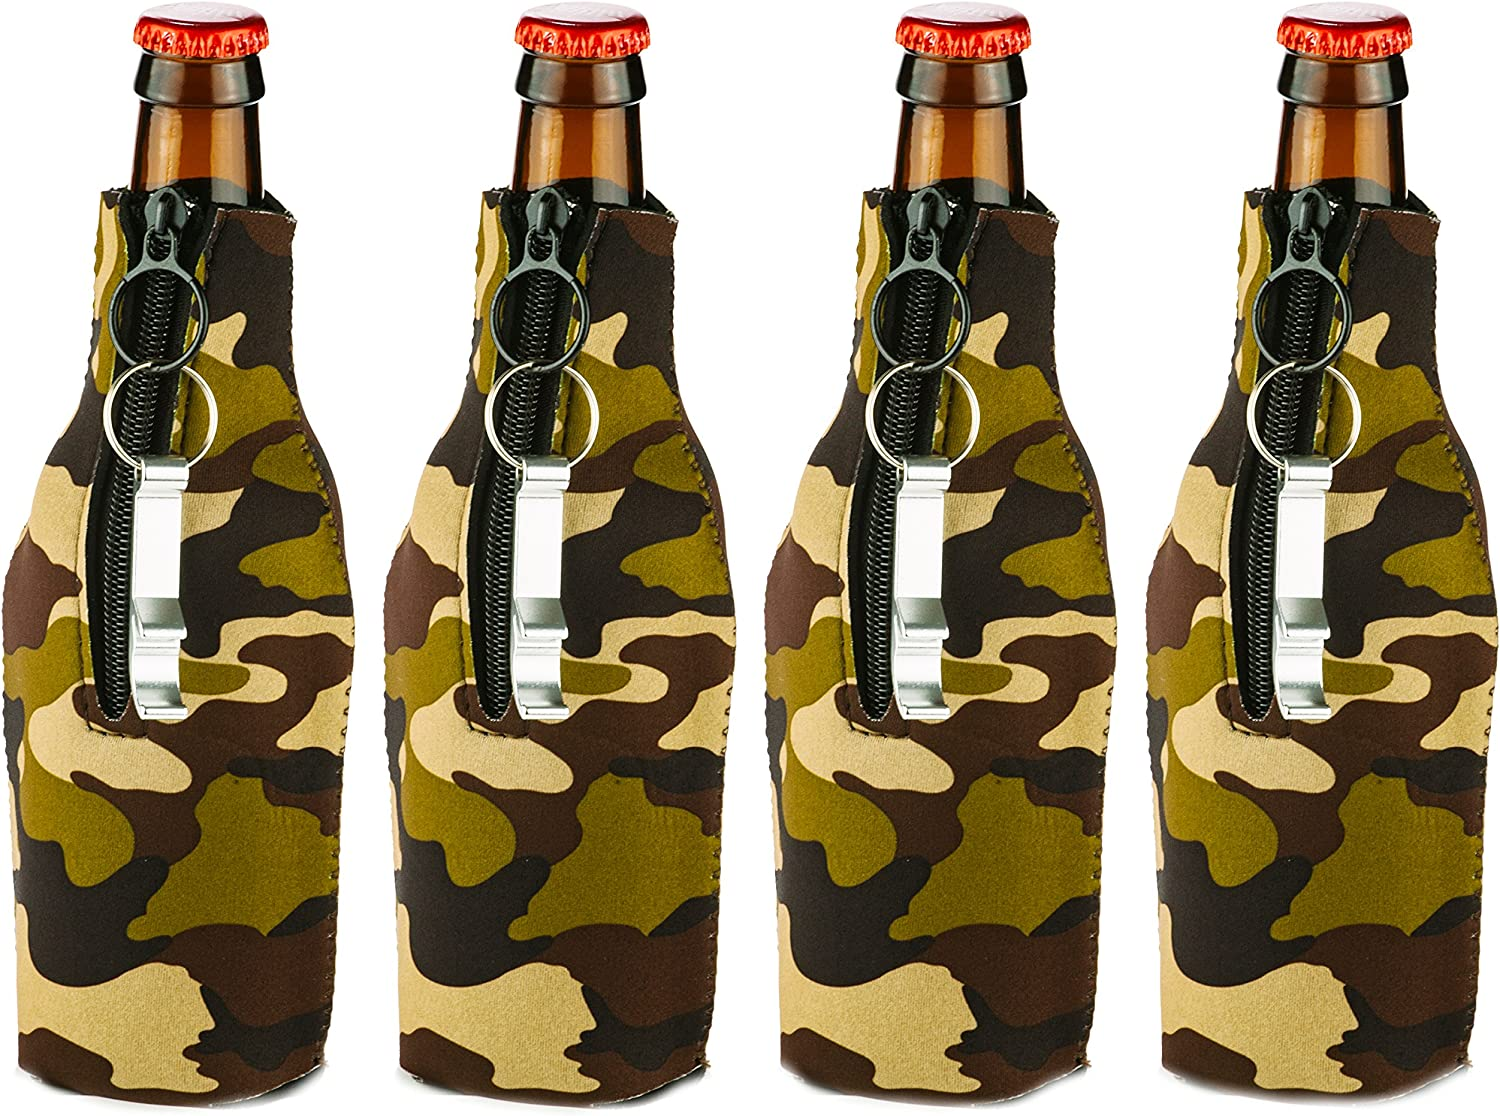 Funny Guy Mugs Premium Plain Collapsible Neoprene Bottle Coolies, Camouflage, Set of Four With Bottle Openers